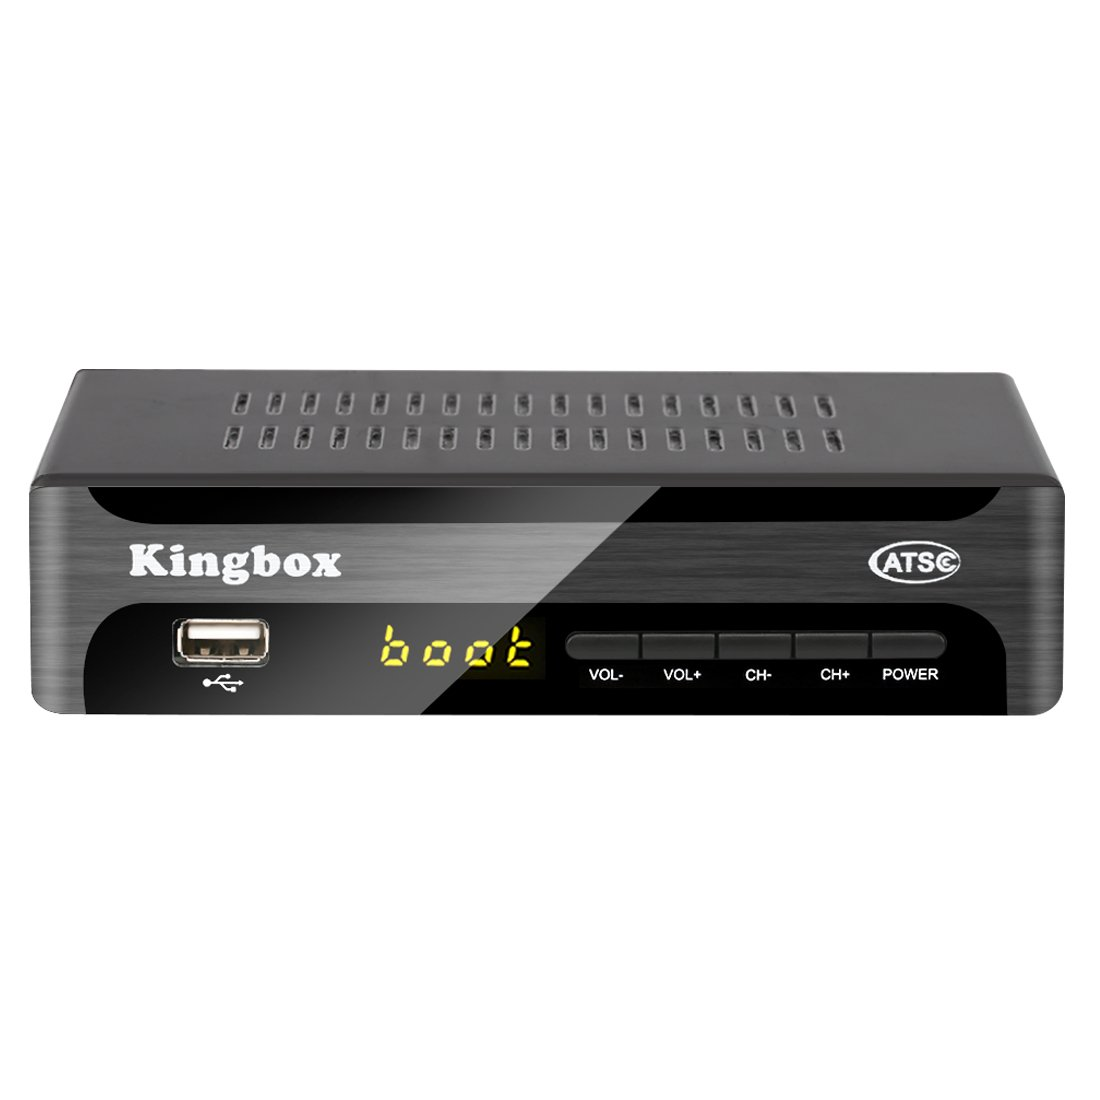 Kingbox Digital TV Converter Box for Analog TV, ATSC Tuner with Record and Pause Live TV, USB Multimedia Playback, HDTV Set Top Box for HD 1080P (2018 Version)